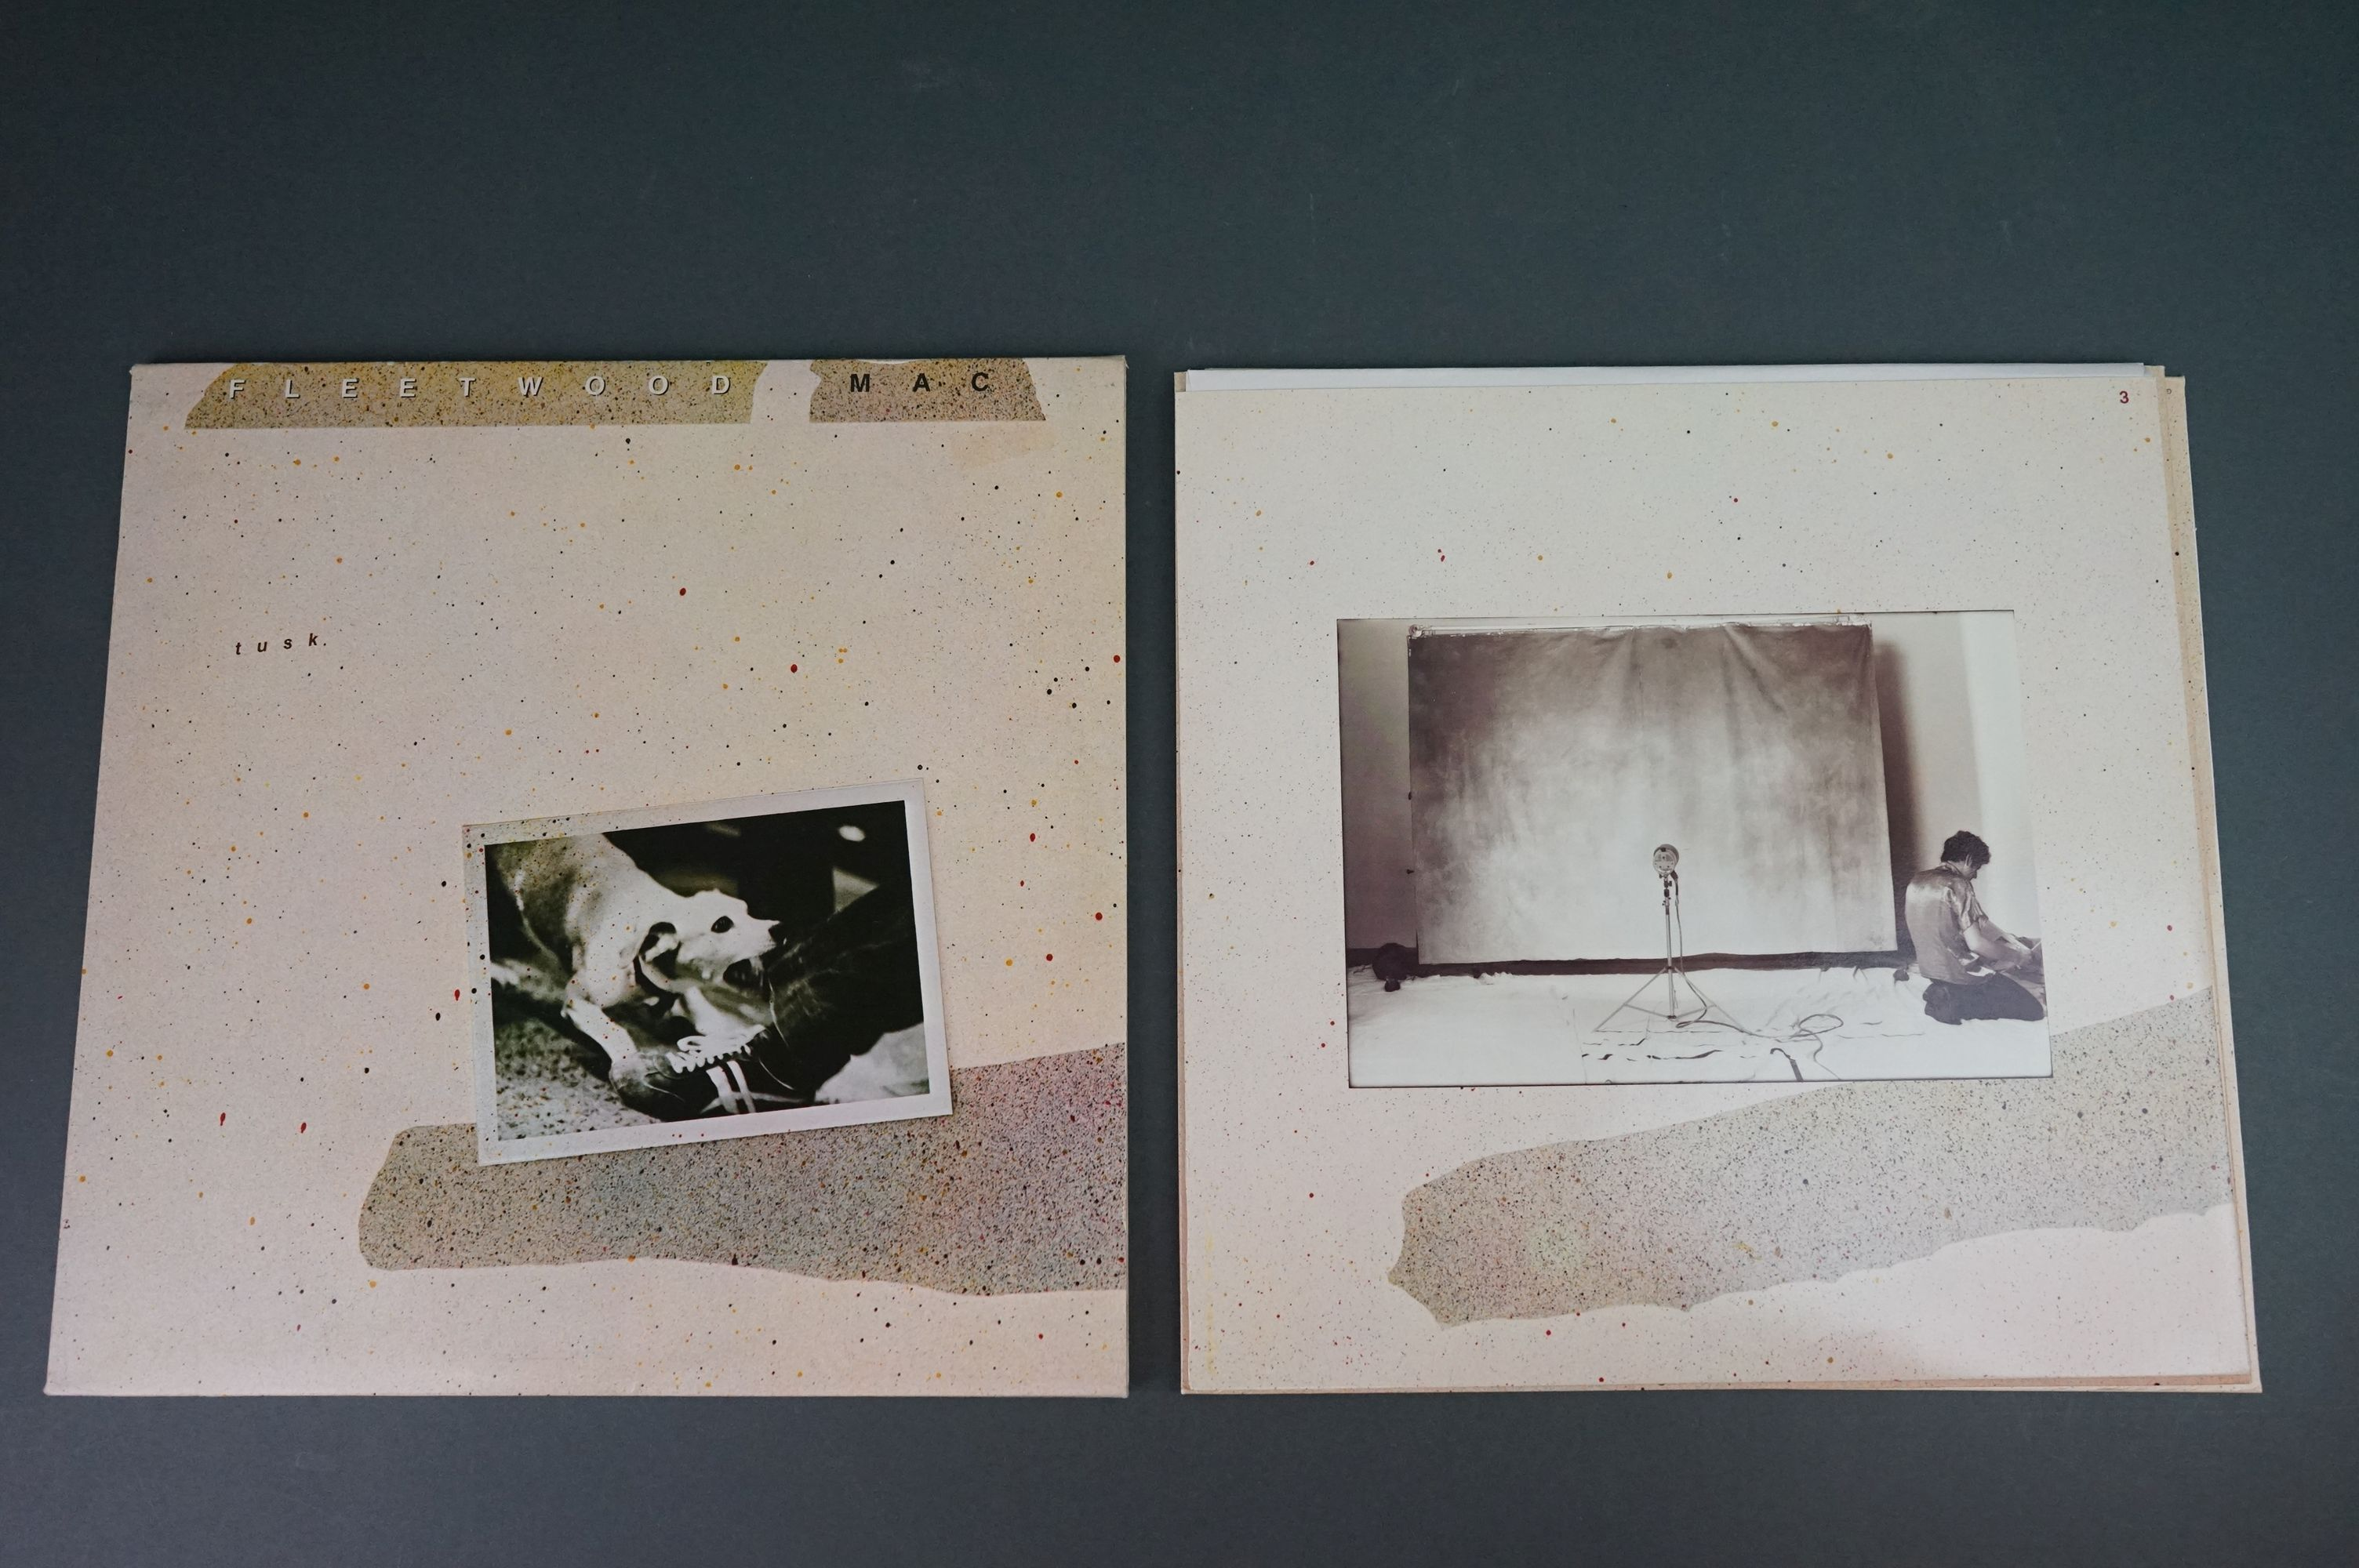 Vinyl - Two Fleetwood Mac LPs to include Tusk (K66088) and Rumours (K56344), sleeves and vinyl vg+ - Image 4 of 7